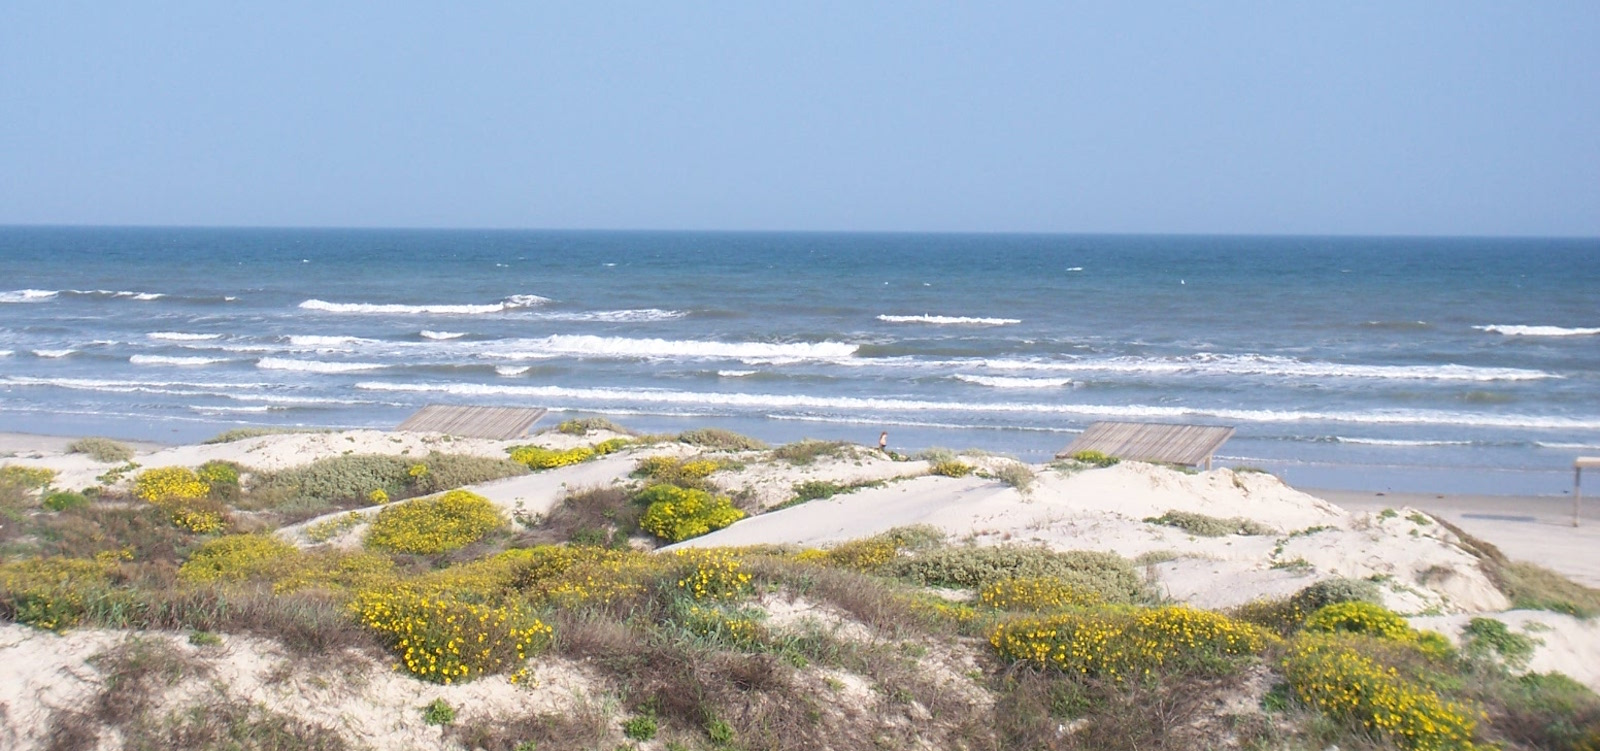 17-South-Padre-Island-to-Mustang-Island-0161